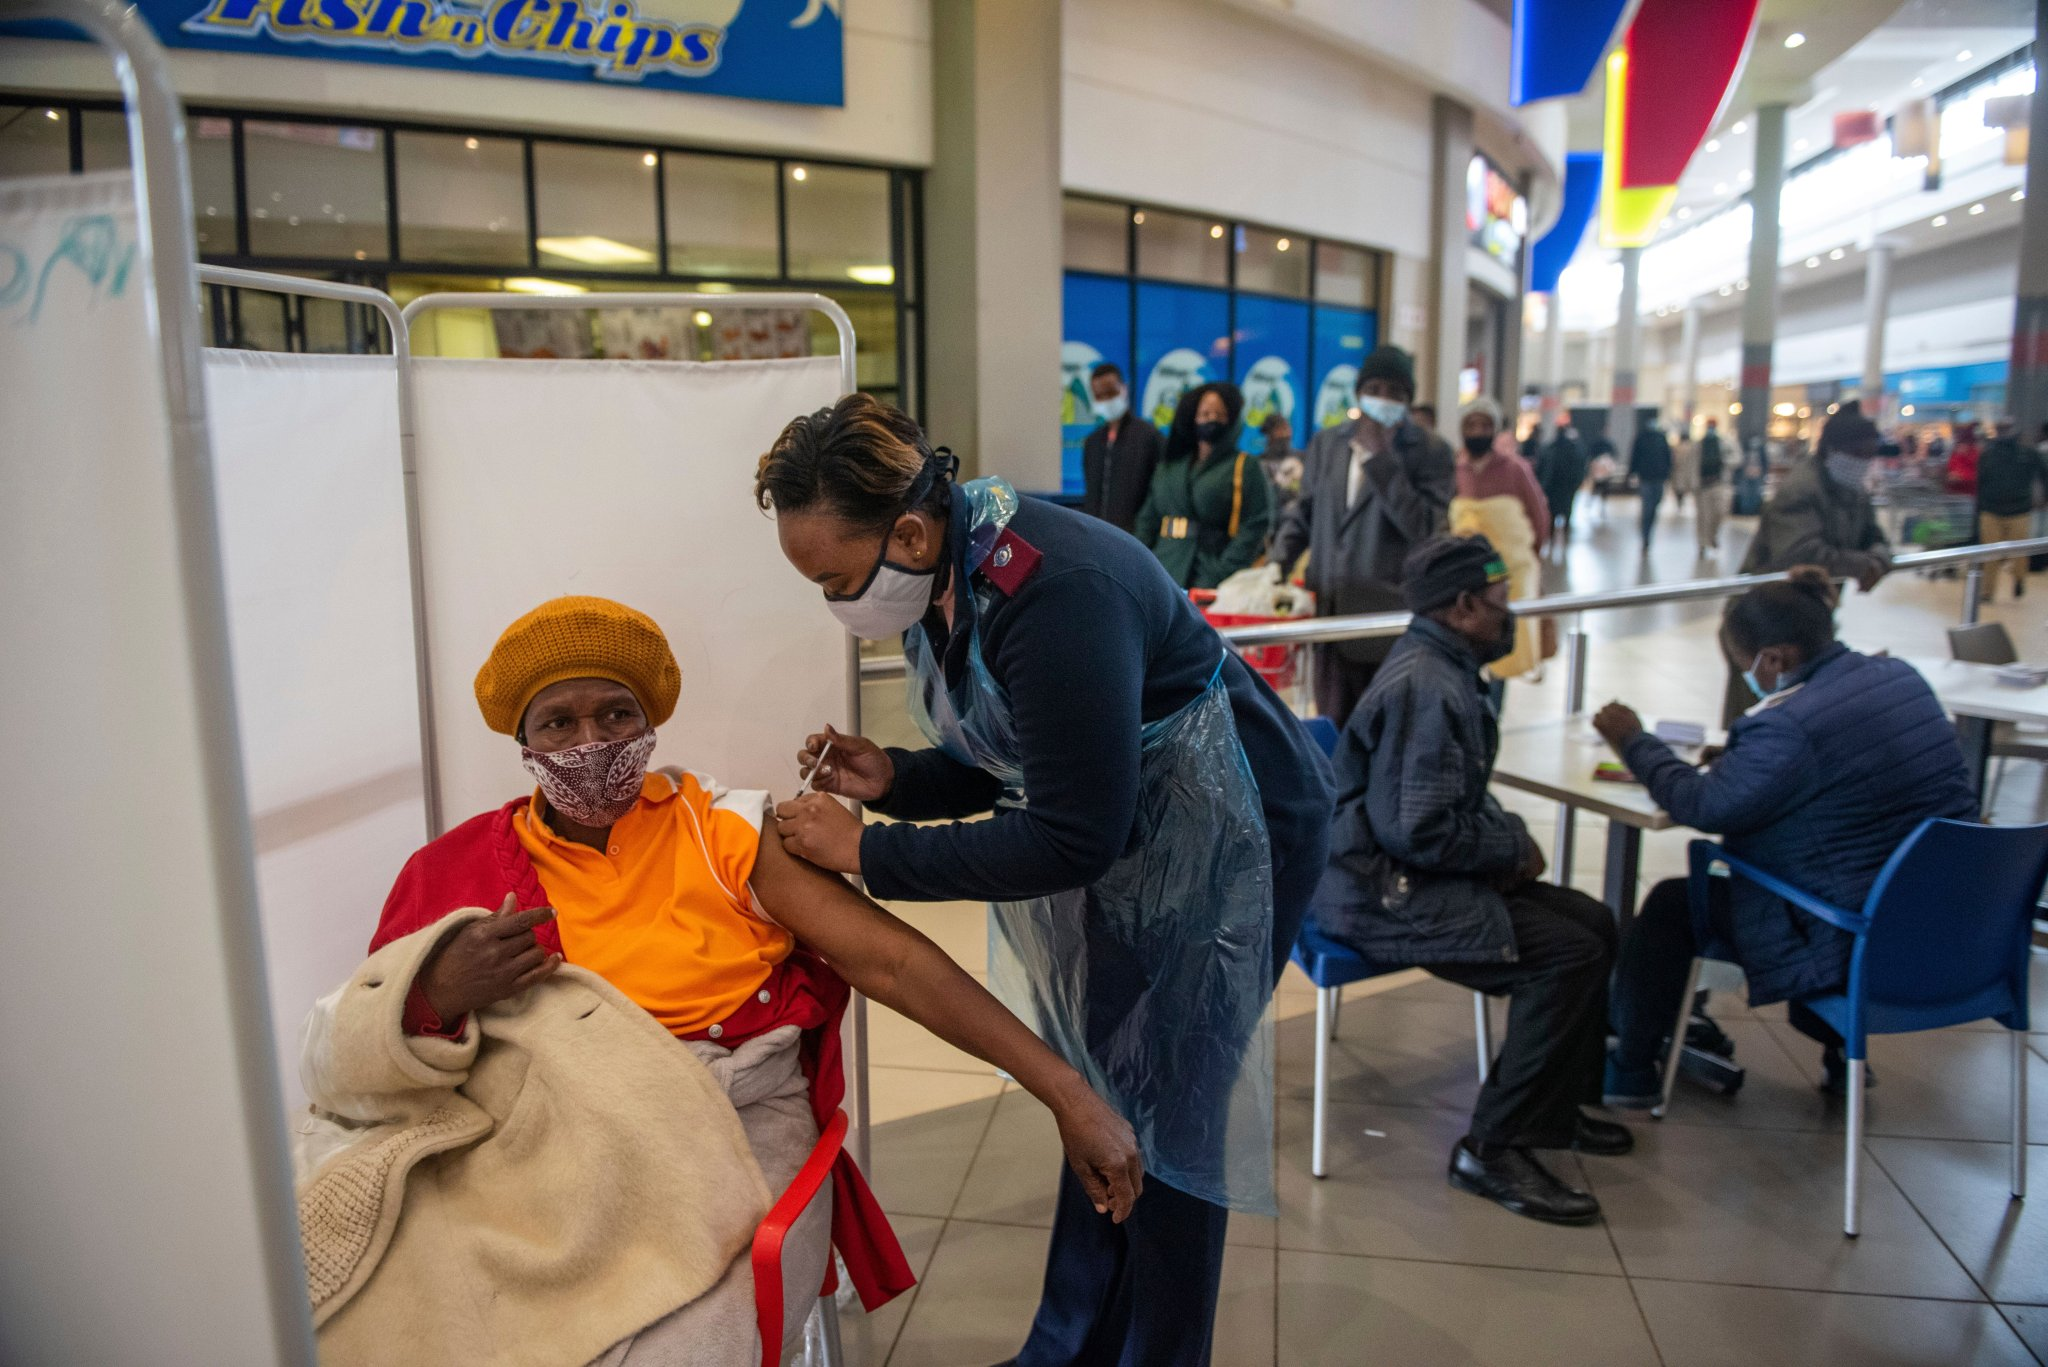 South Africa ramps up vaccine drive as continent marks 'most dire pandemic week'